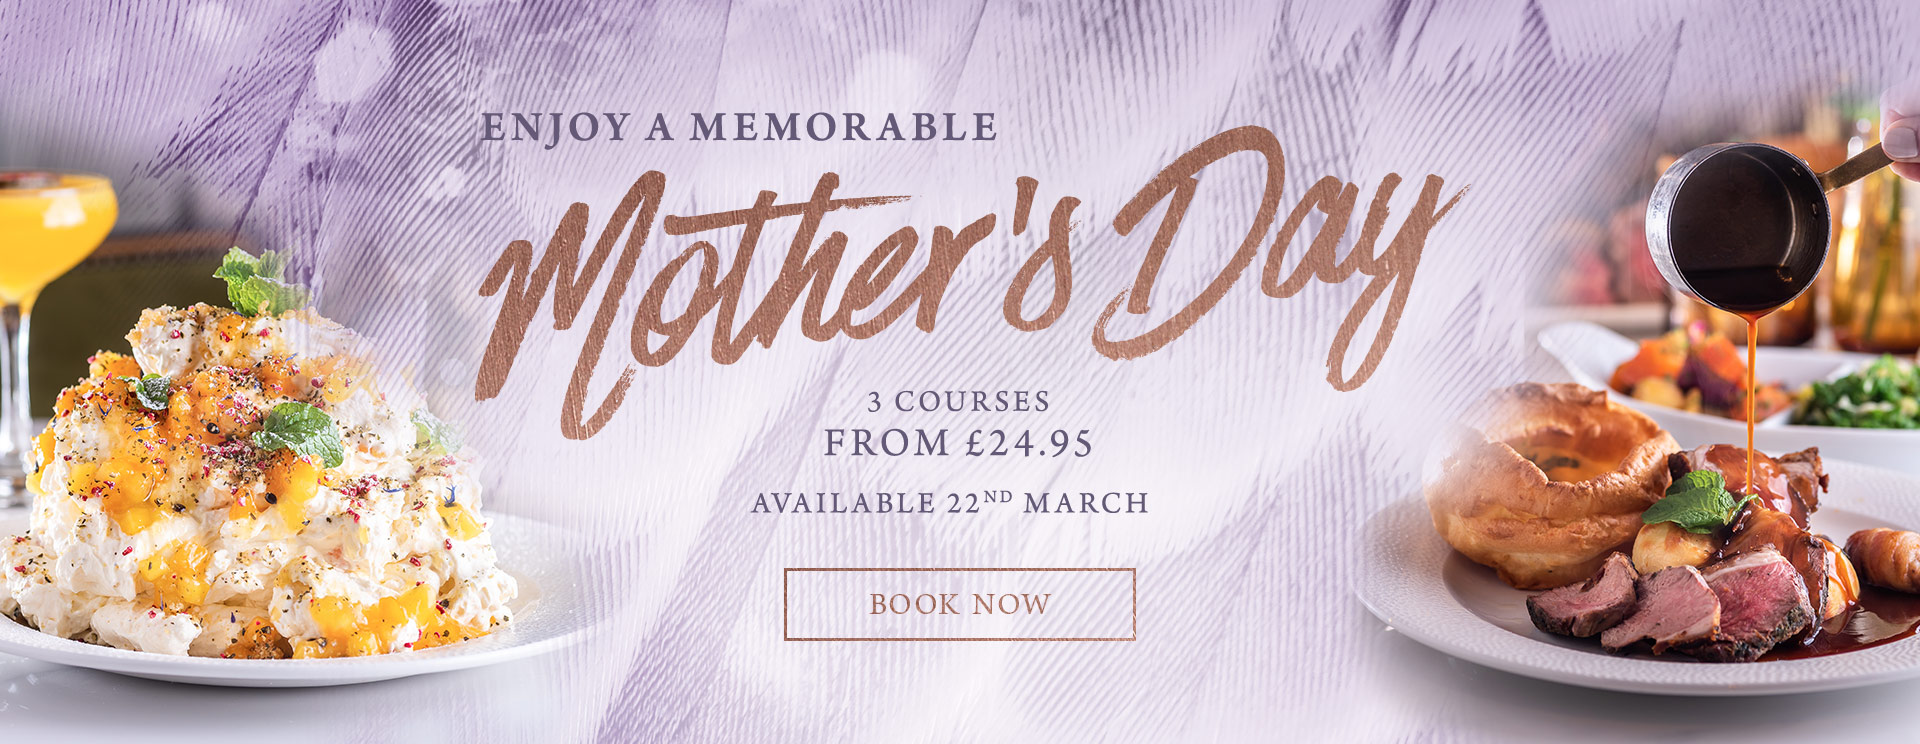 Mother's Day 2019 at The Midland